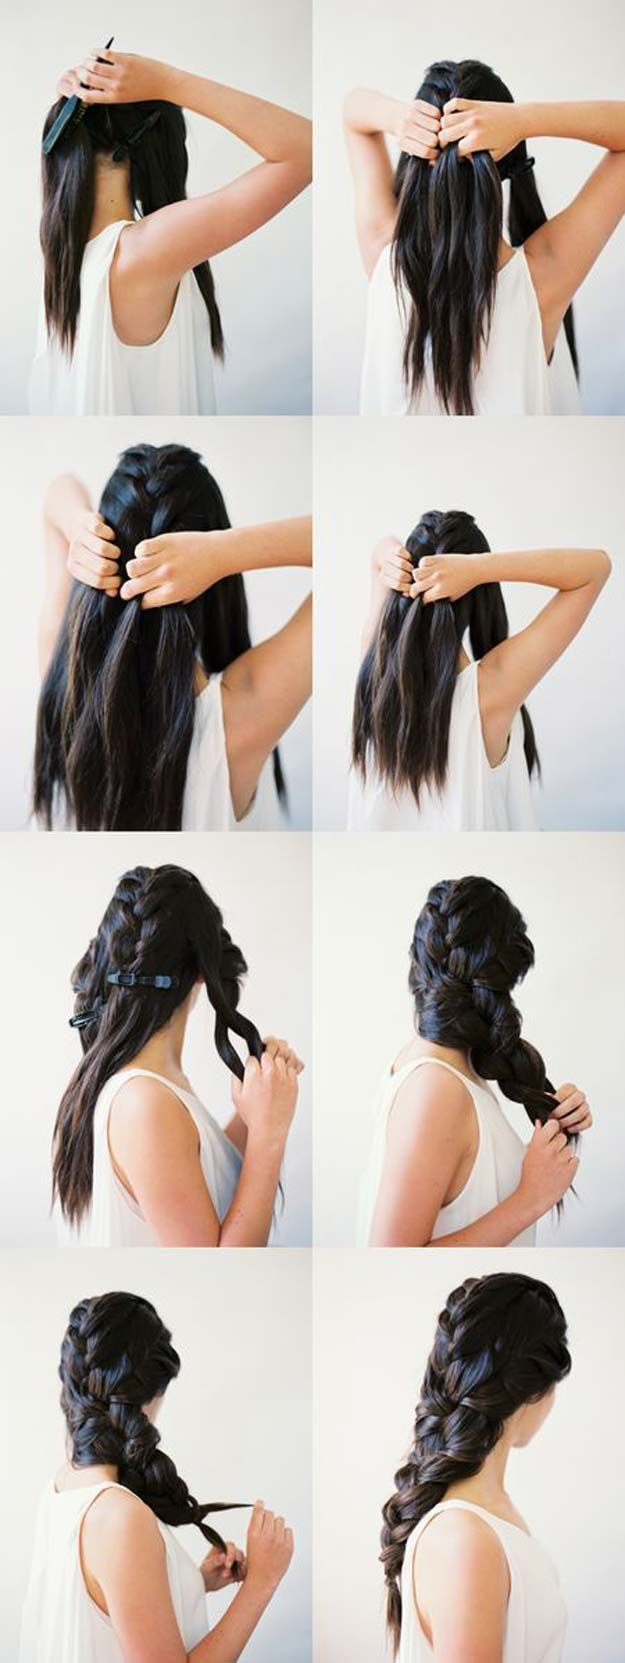 Diy Hairstyles 41 diy cool easy hairstyles that real people can actually do at home 41 Diy Cool Easy Hairstyles That Real People Can Actually Do At Home